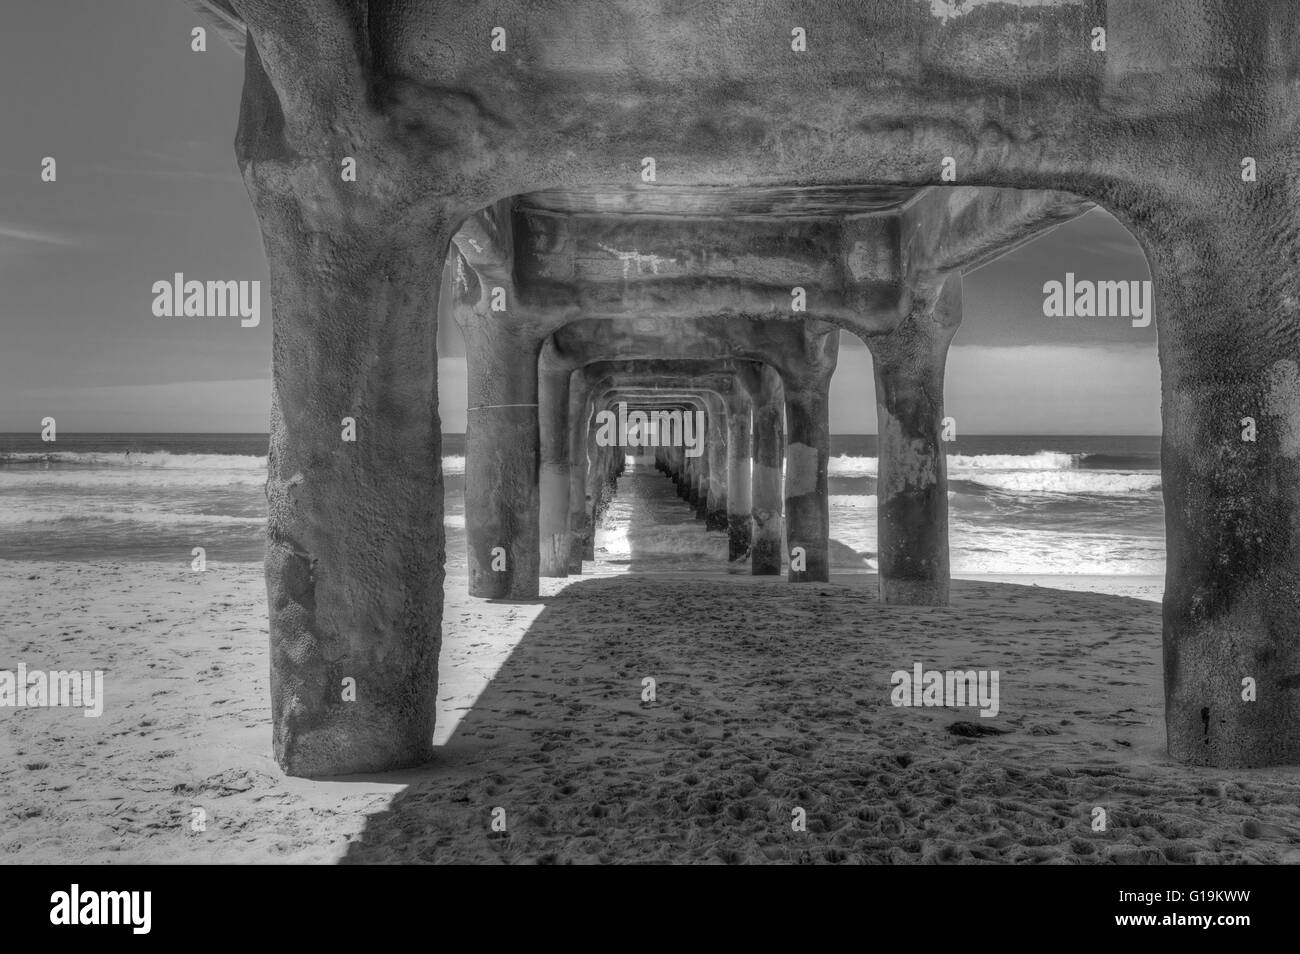 Manhattan Beach Pier is a pier located in Manhattan Beach, California, on the coast of the Pacific Ocean. - Stock Image